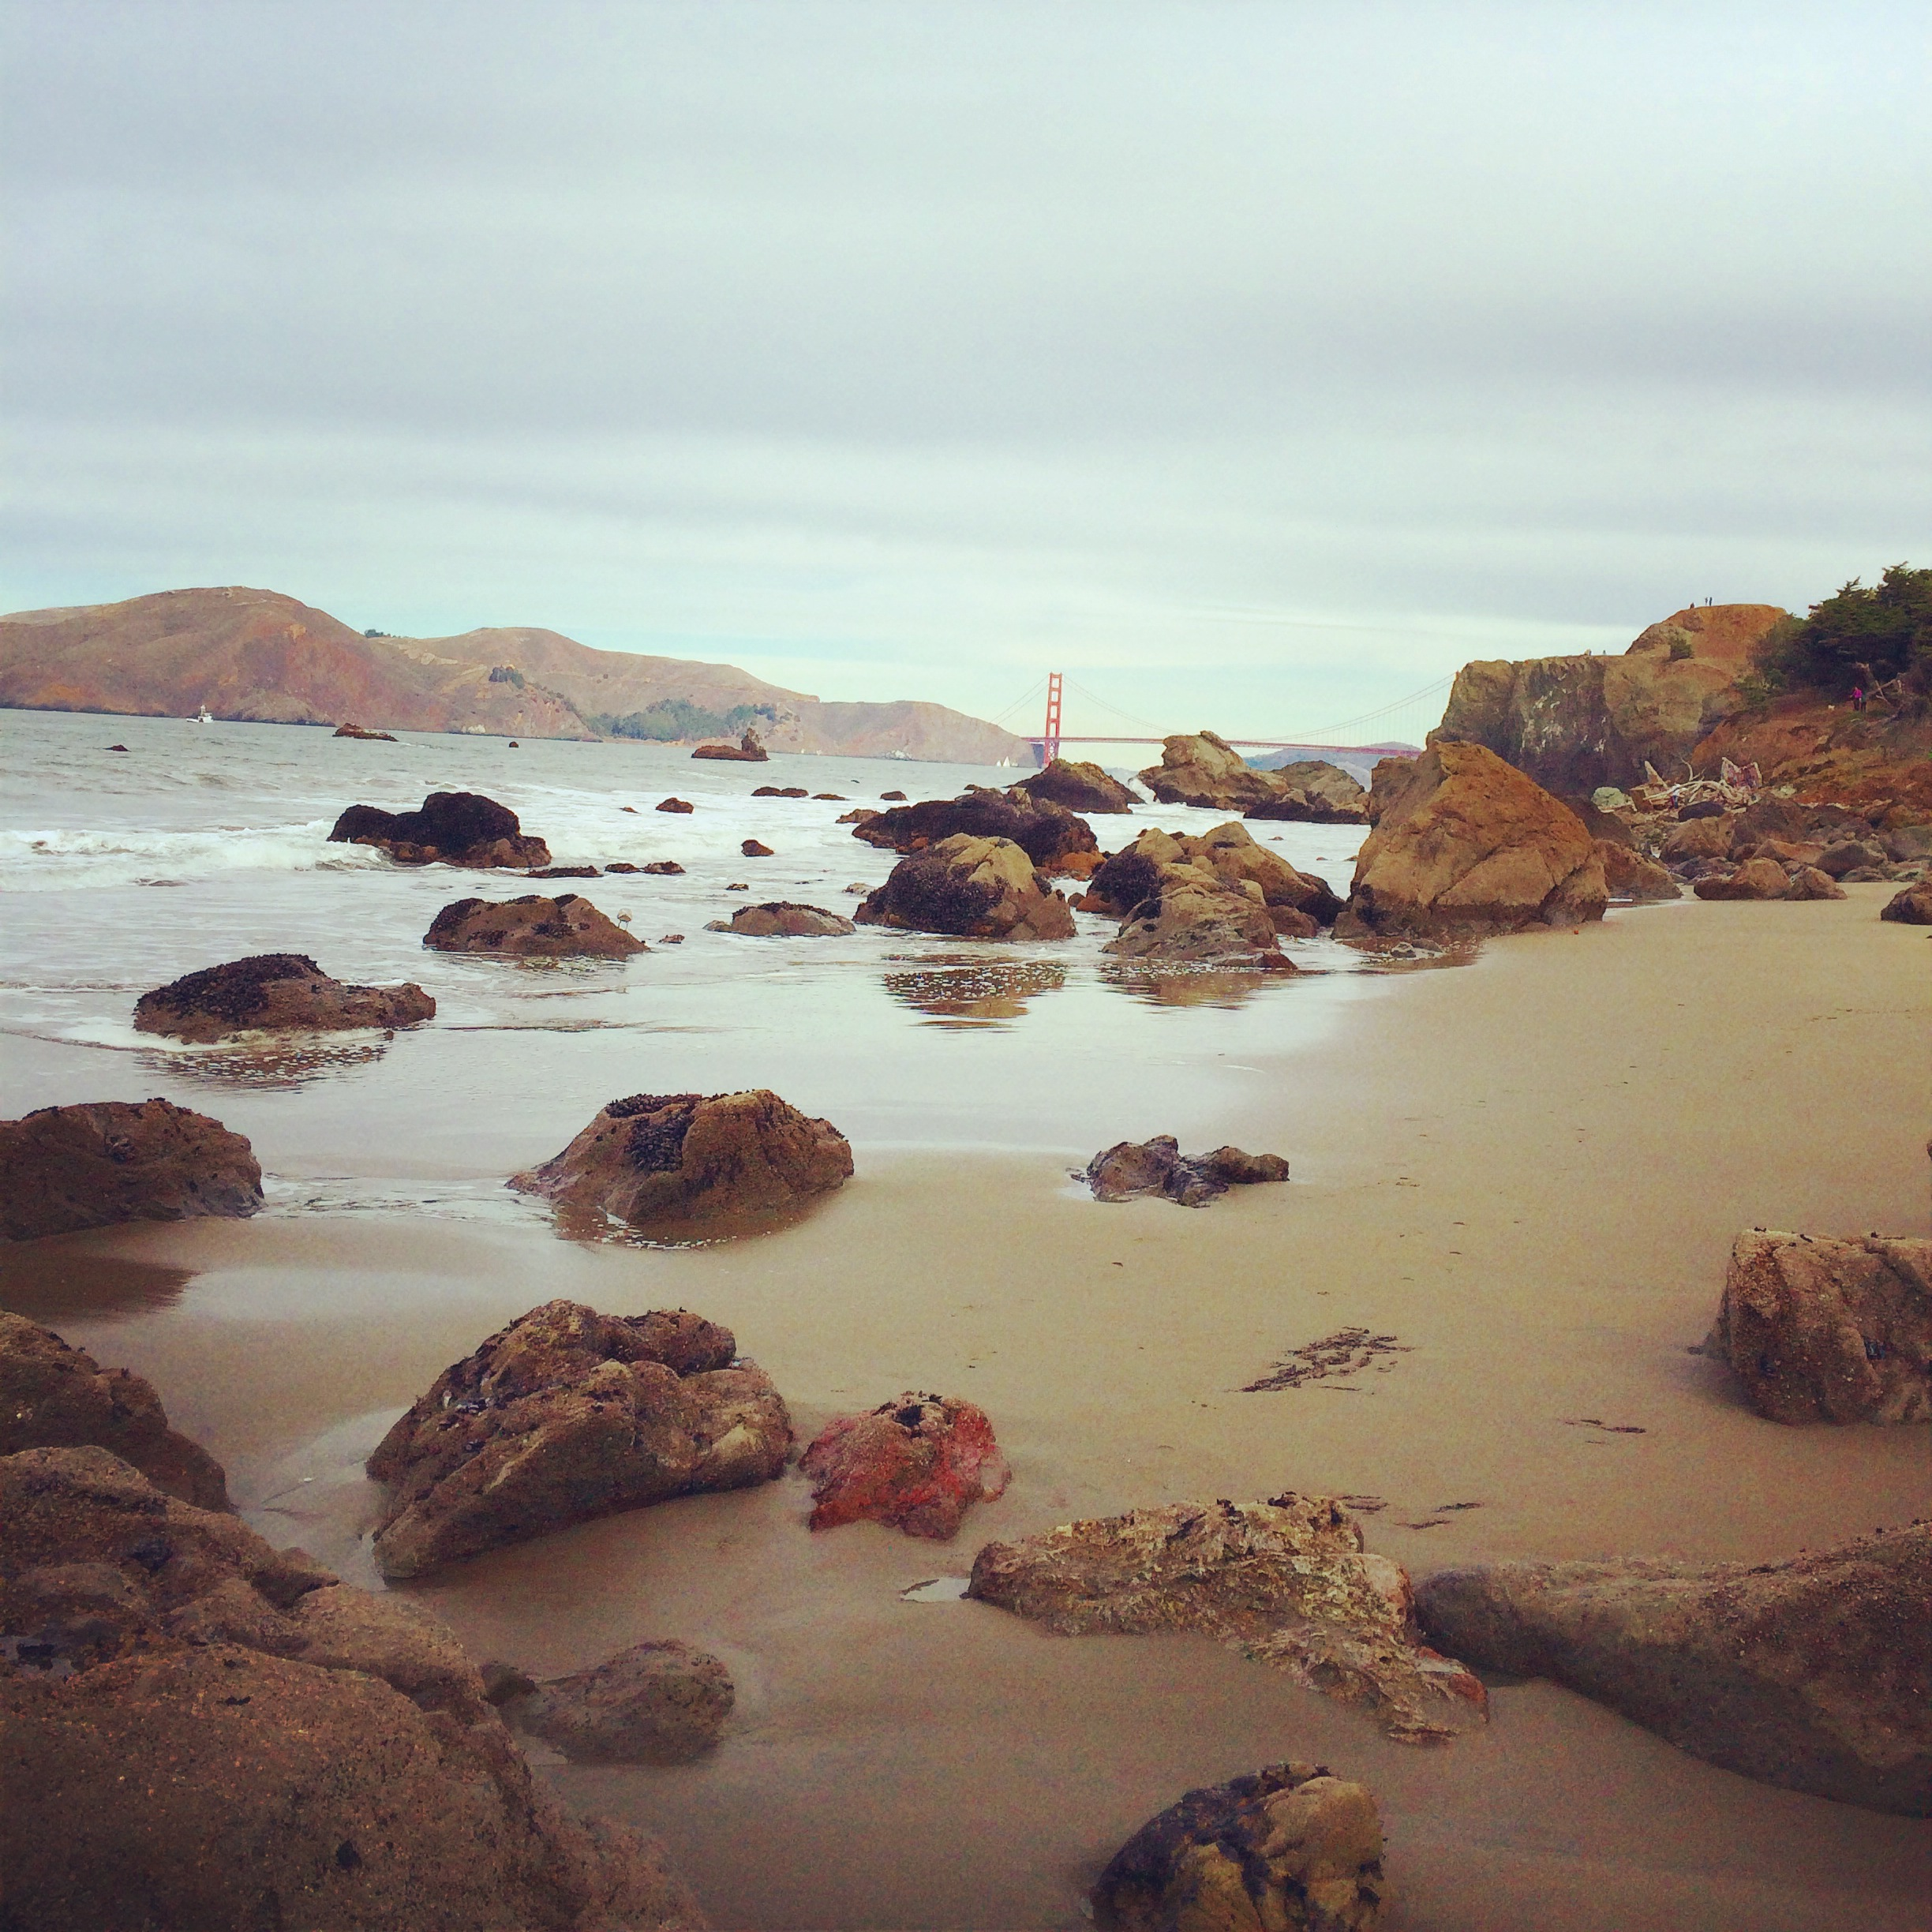 Explore the hidden beaches of Lands End